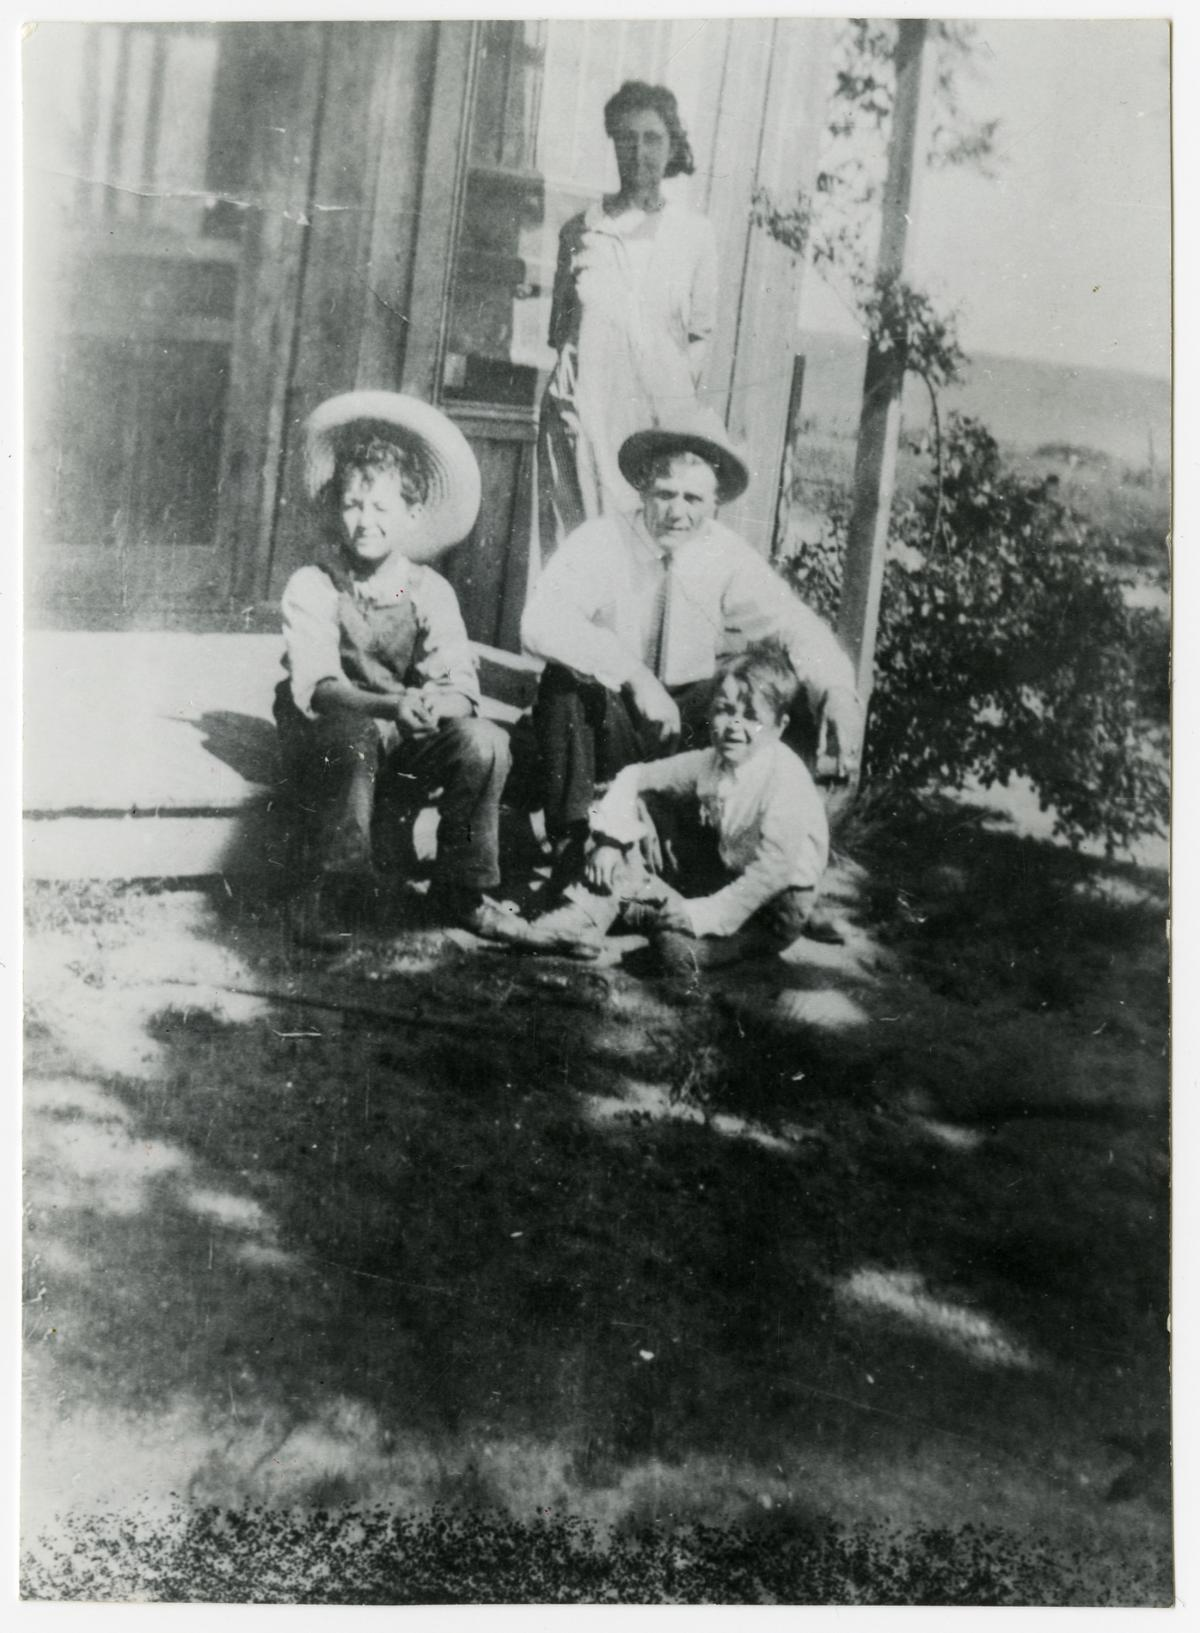 Woody Guthrie with his parents, Nora Belle and Charley, and brother George, at their home in Okemah, Okla., in 1926.